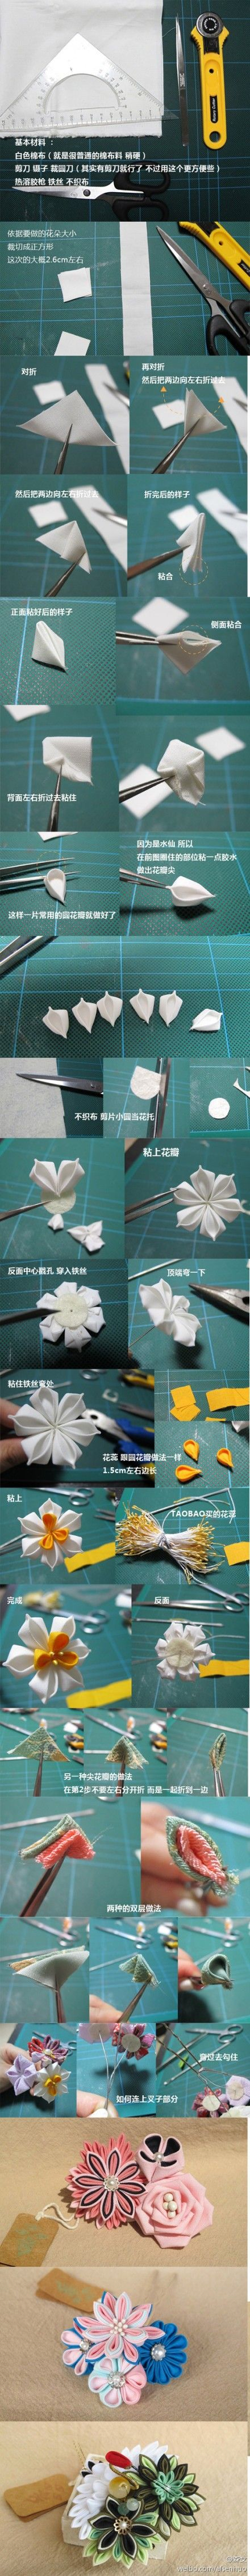 Kanzashi tutorial. Narcissus flower. Supplies: six white squares, 3 yellow squares, fabric glue (or Nori rice paste), 1 white felt circle, 1 length of florist wire (or similar), yellow stamens (aka pips), pliers, scissors and tweezers